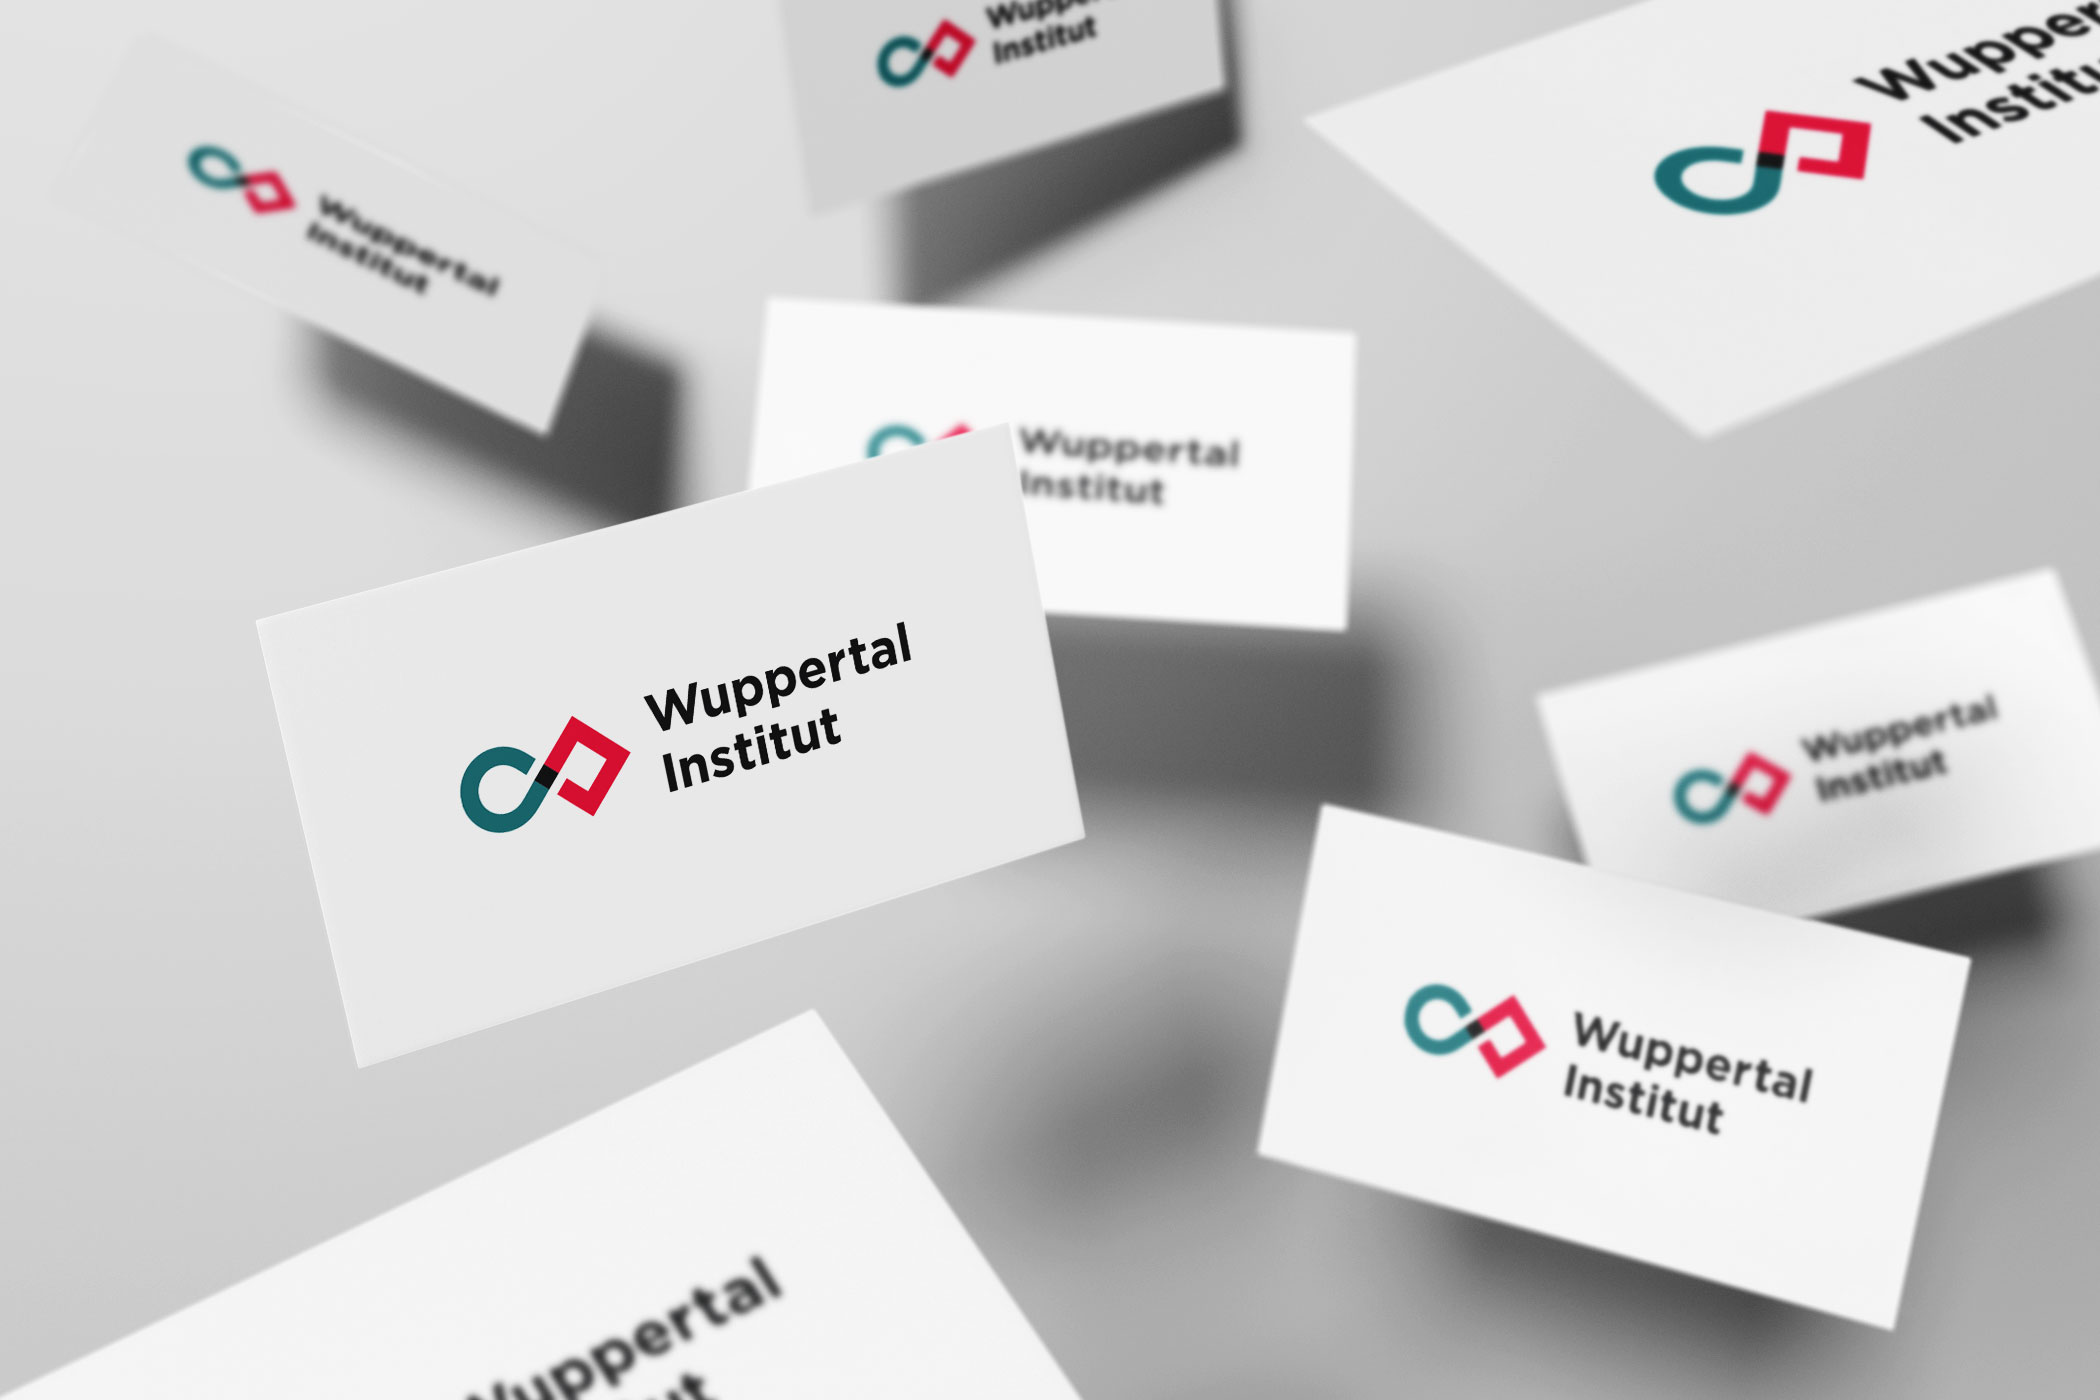 labstract_digital_branding_services_Design-Tonalitaet_2